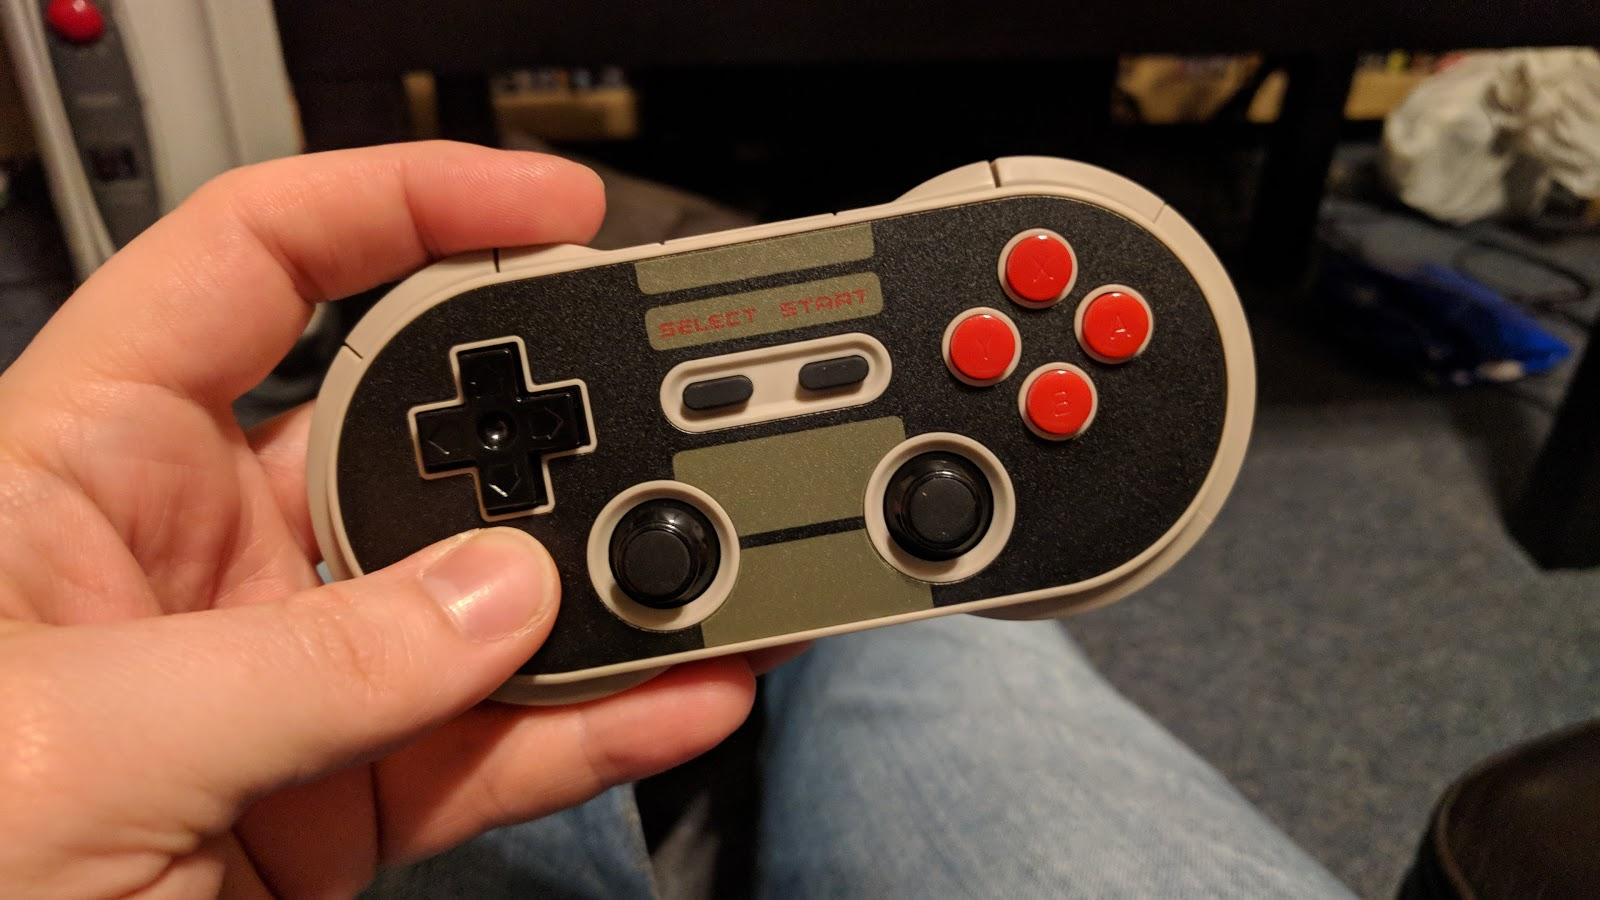 Pizslackers Blog Inspired Madman Or Complete Jackass March 2018 8bitdo Nes30 Pro Retro Bluetooth Controller For Switch Ios Android Pc Mac A Grade Game Ergo Can Handle Some Abuse Made Use With Practically Any And Even Todays Systems